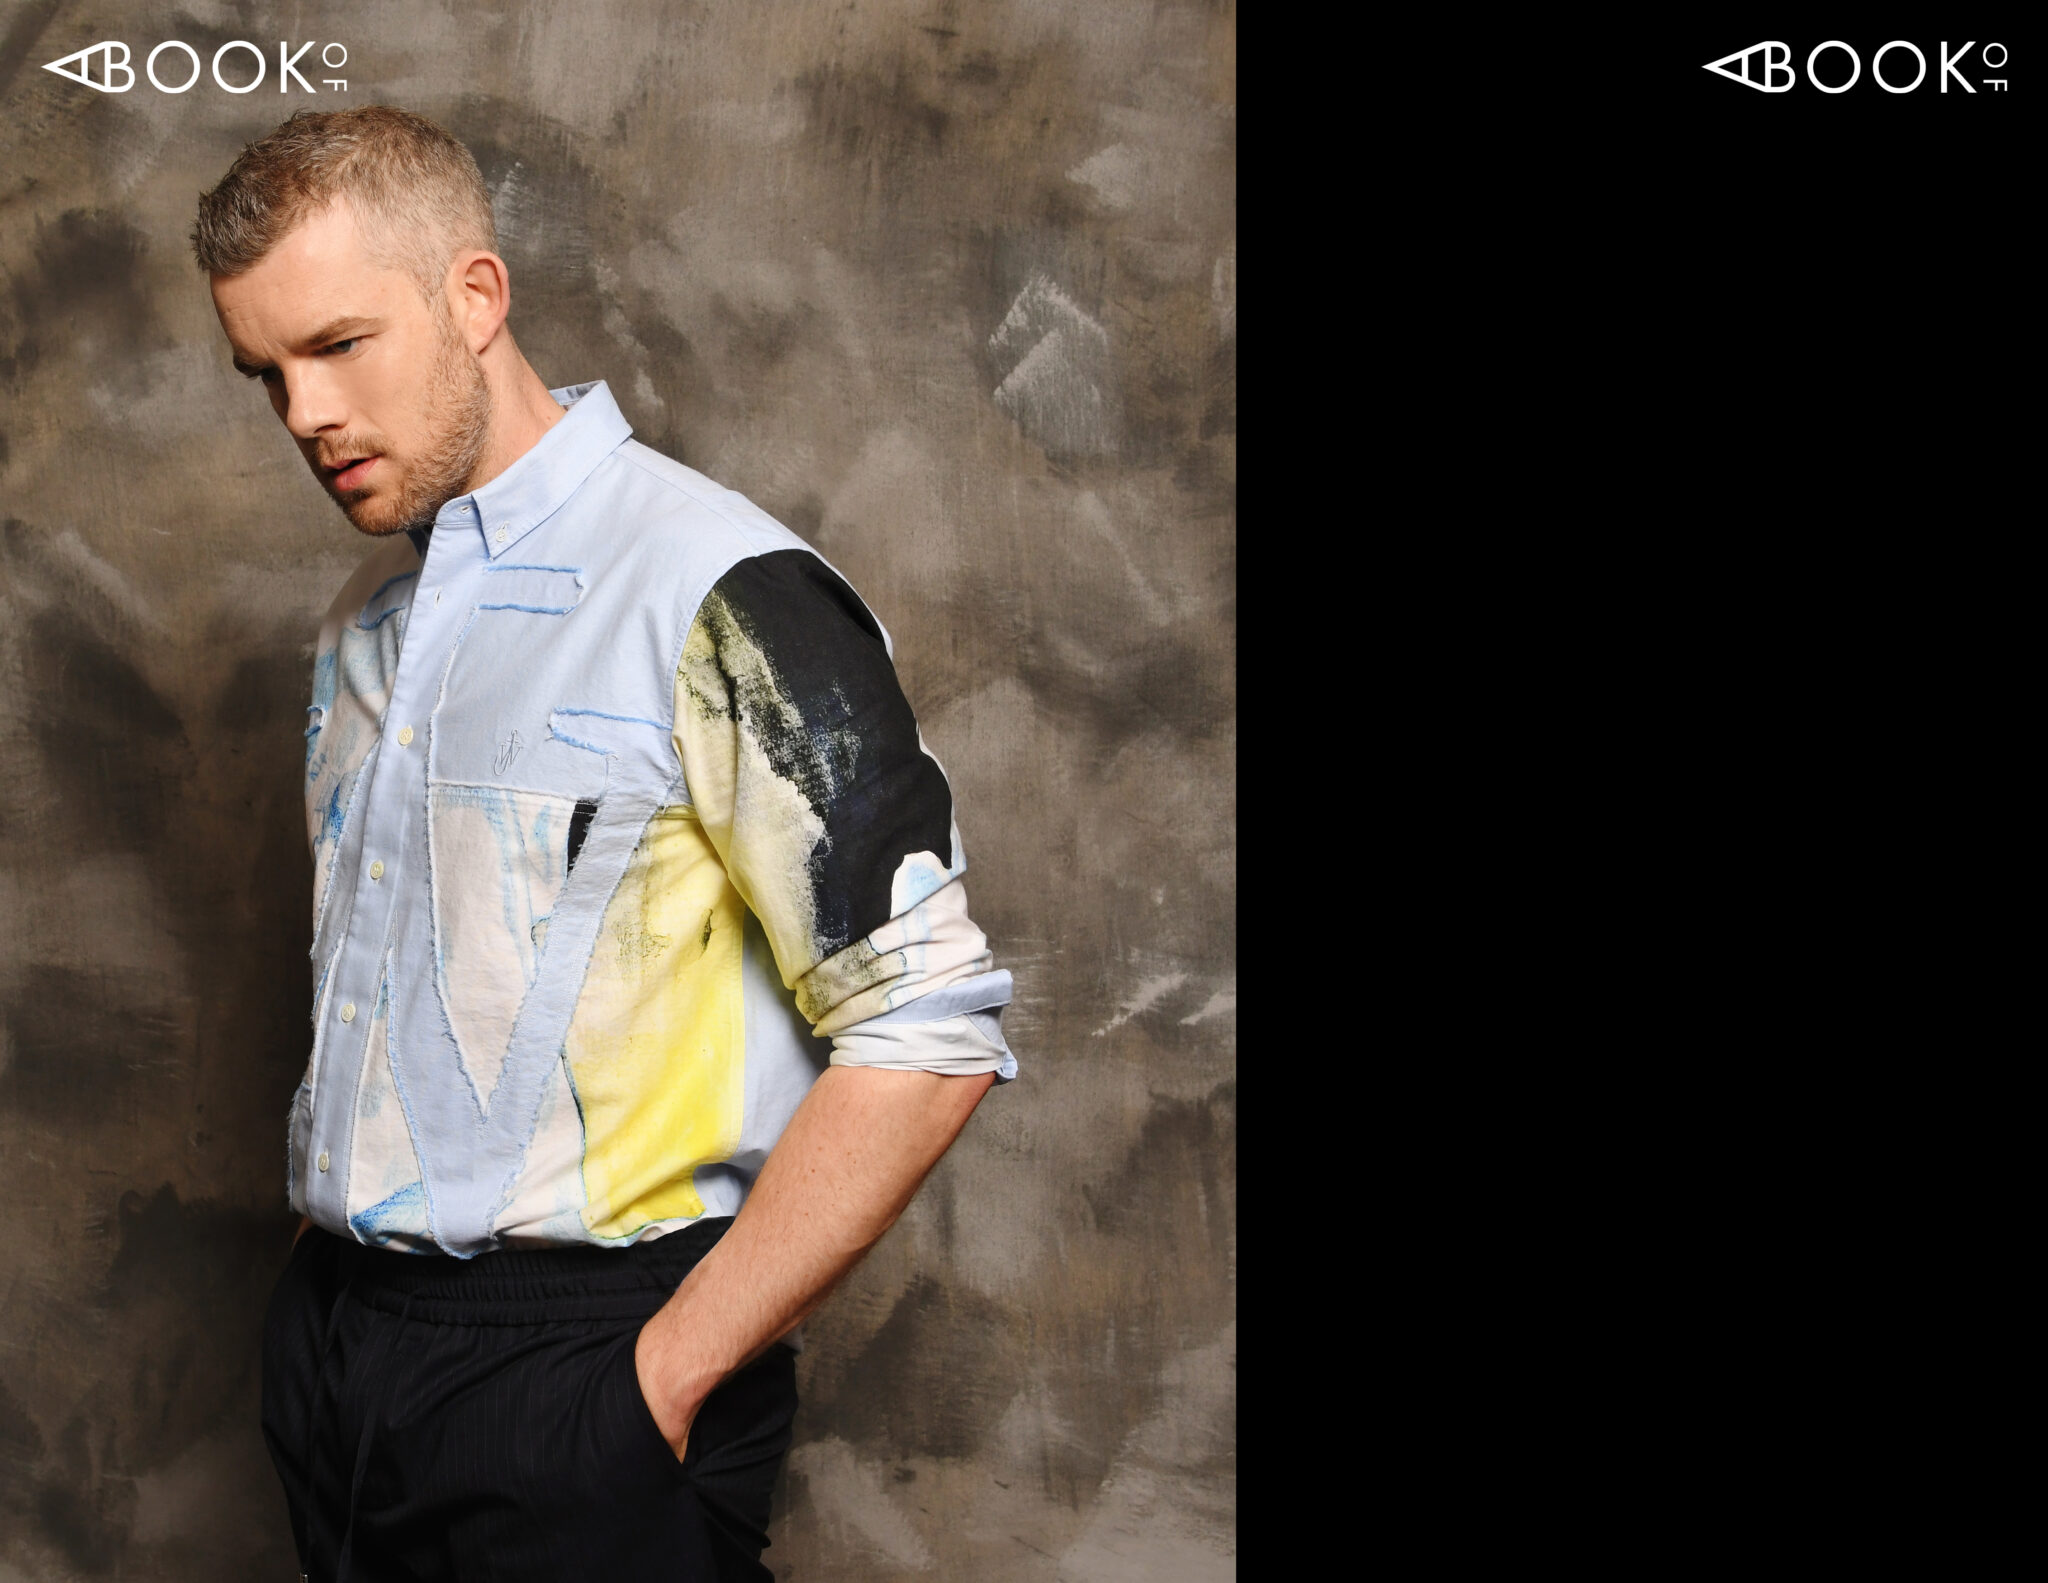 ABOOKOF_RUSSELL_TOVEY_5